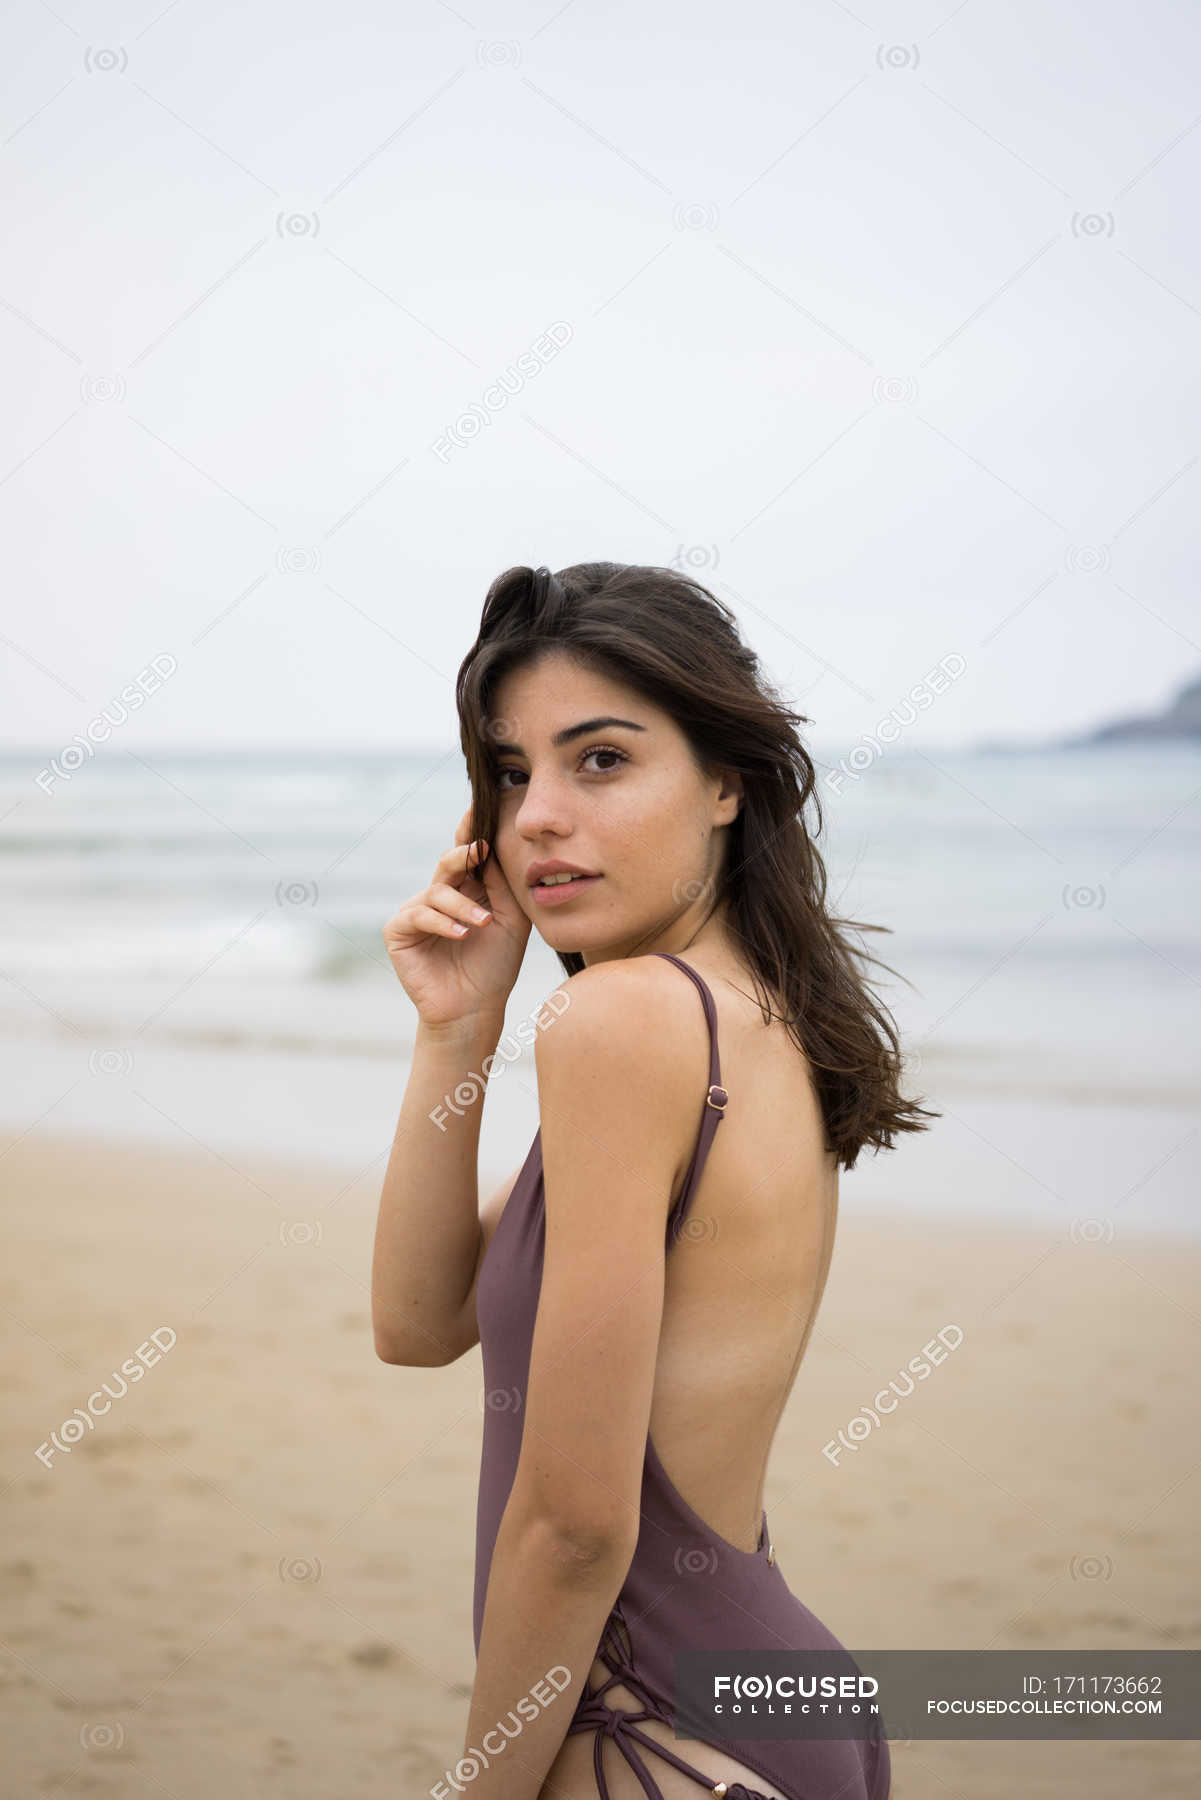 Brunette girl photo Brunette Girl In Swimsuit Posing On Beach And Looking Over Shoulder At Camera Tranquil Tropical Stock Photo 171173662